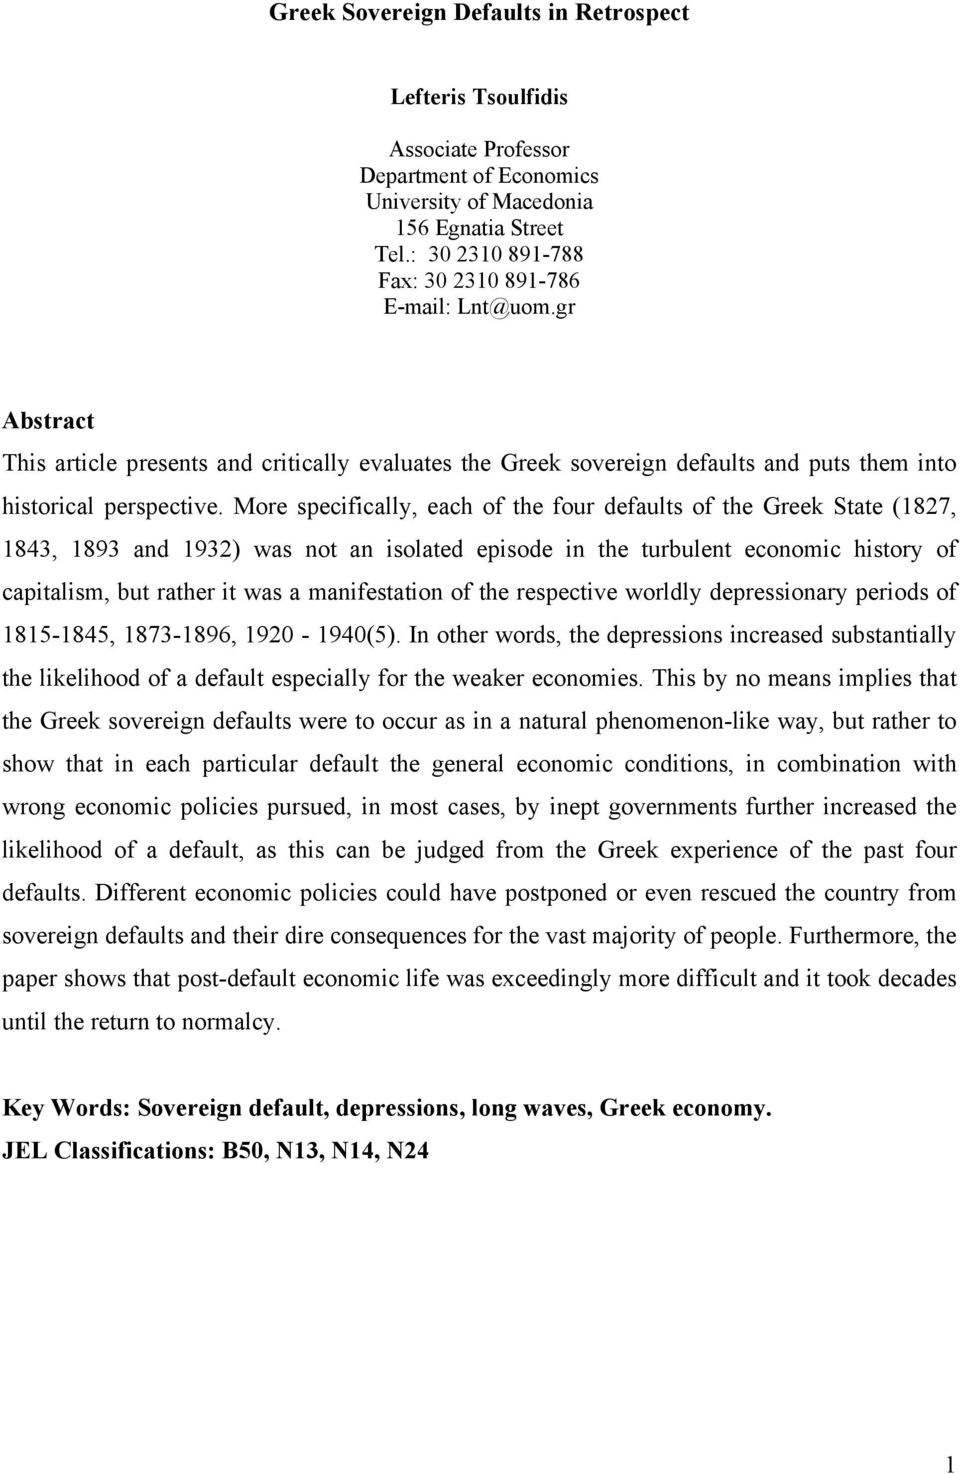 More specifically, each of the four defaults of the Greek State (1827, 1843, 1893 and 1932) was not an isolated episode in the turbulent economic history of capitalism, but rather it was a